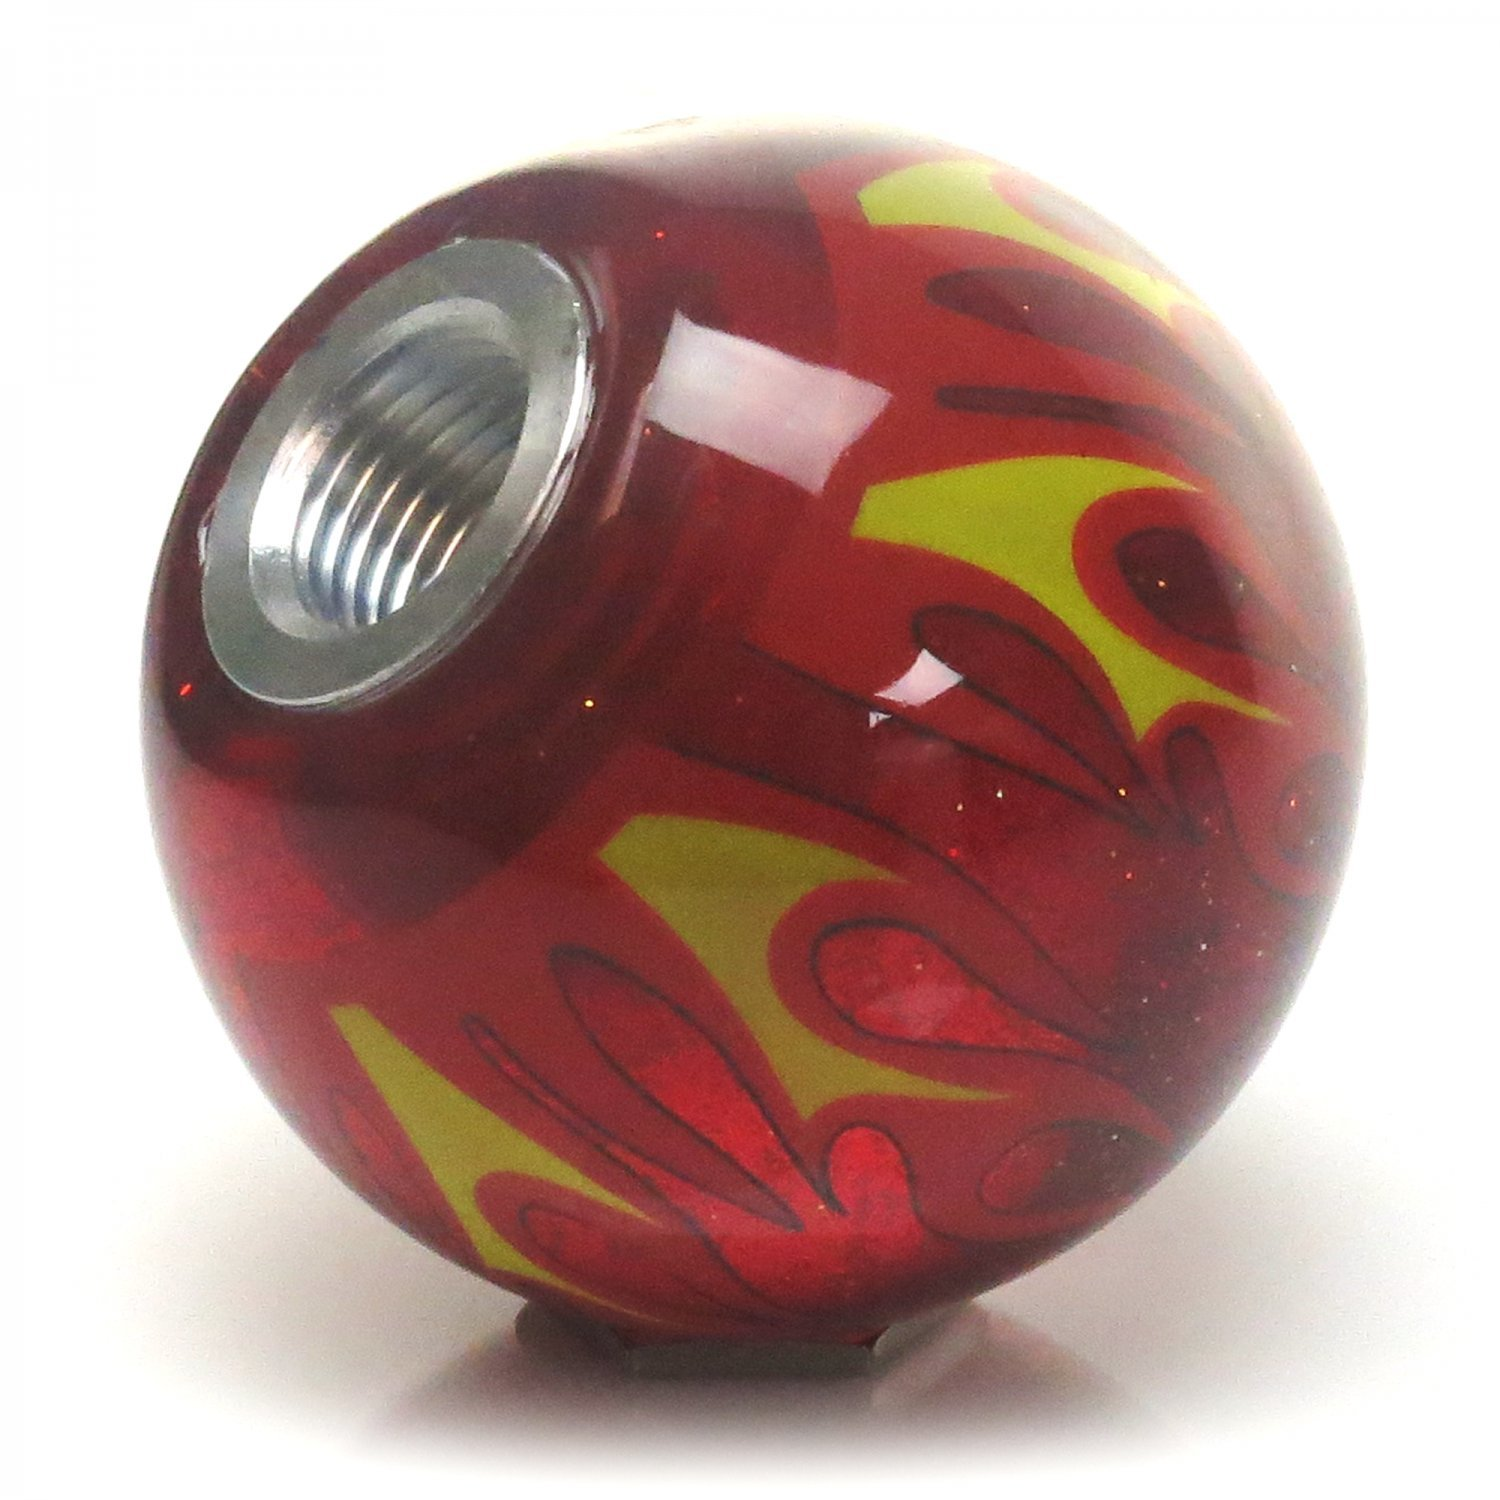 Red I 3 Buick American Shifter 237254 Red Flame Metal Flake Shift Knob with M16 x 1.5 Insert